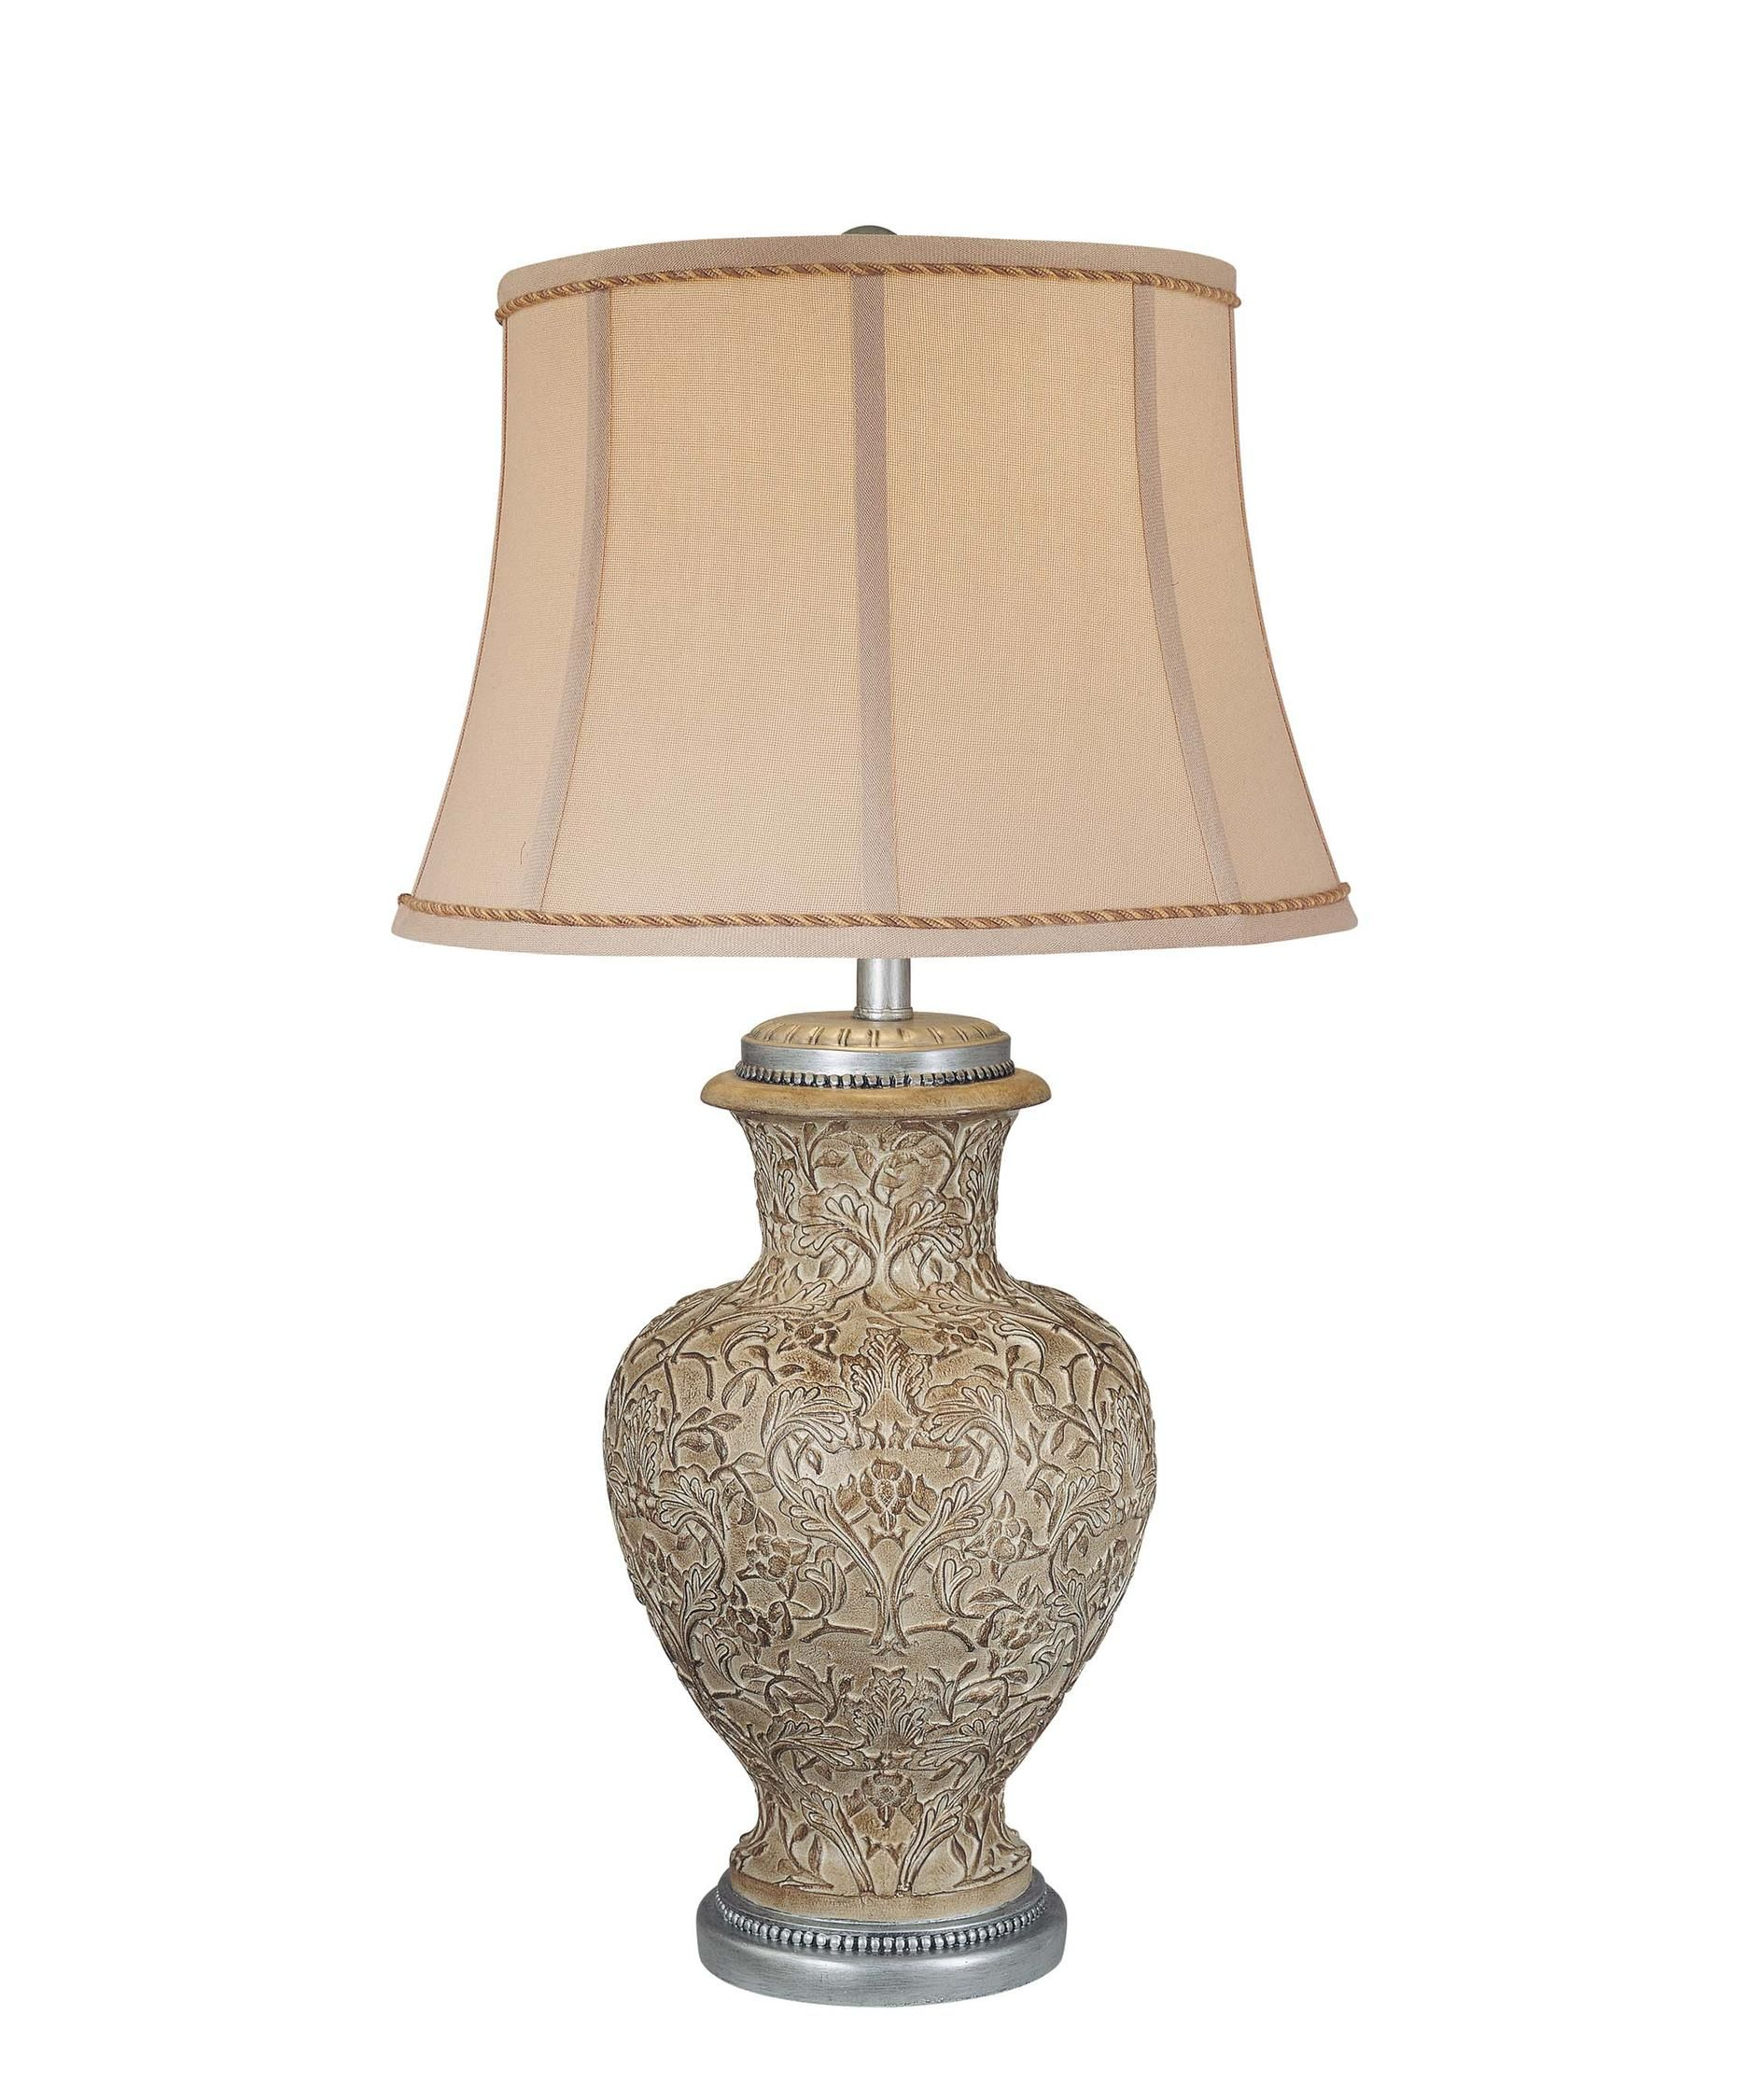 200 Ambience 10375 32 Inch Table Lamp Capitol Lighting 1 800lighting Com Table Lamp Lamp Wooden Lamp